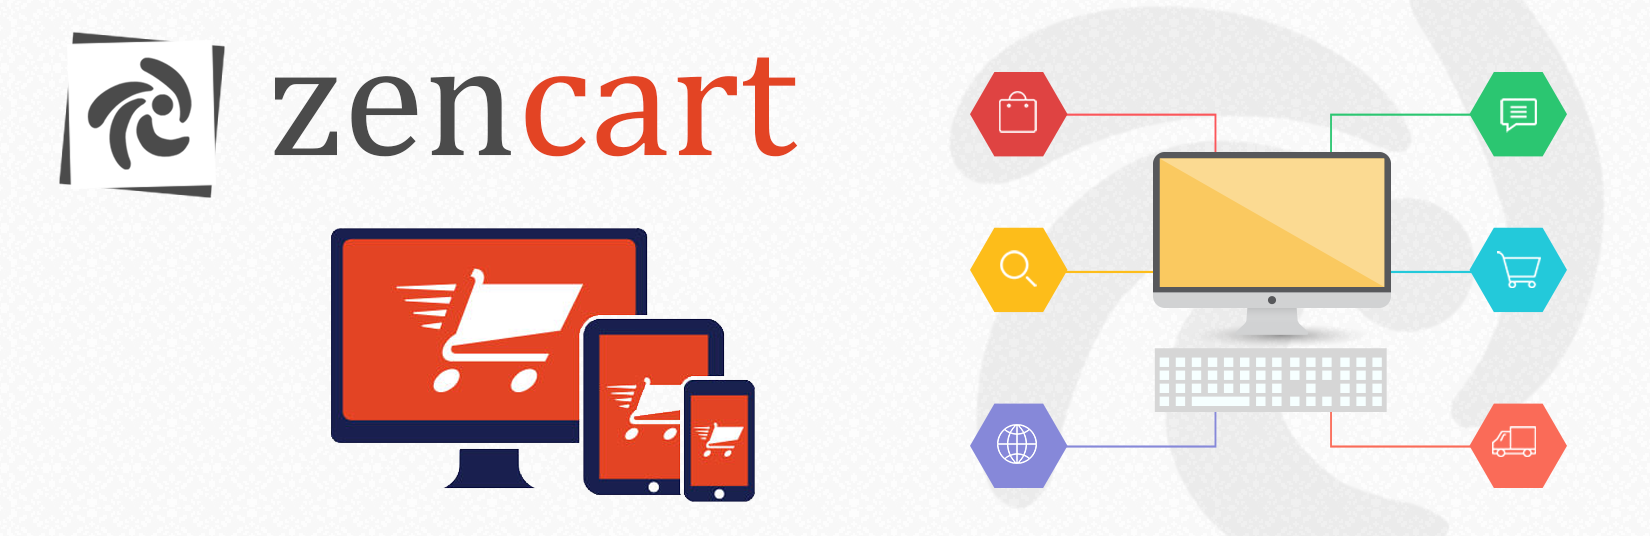 zen cart web development